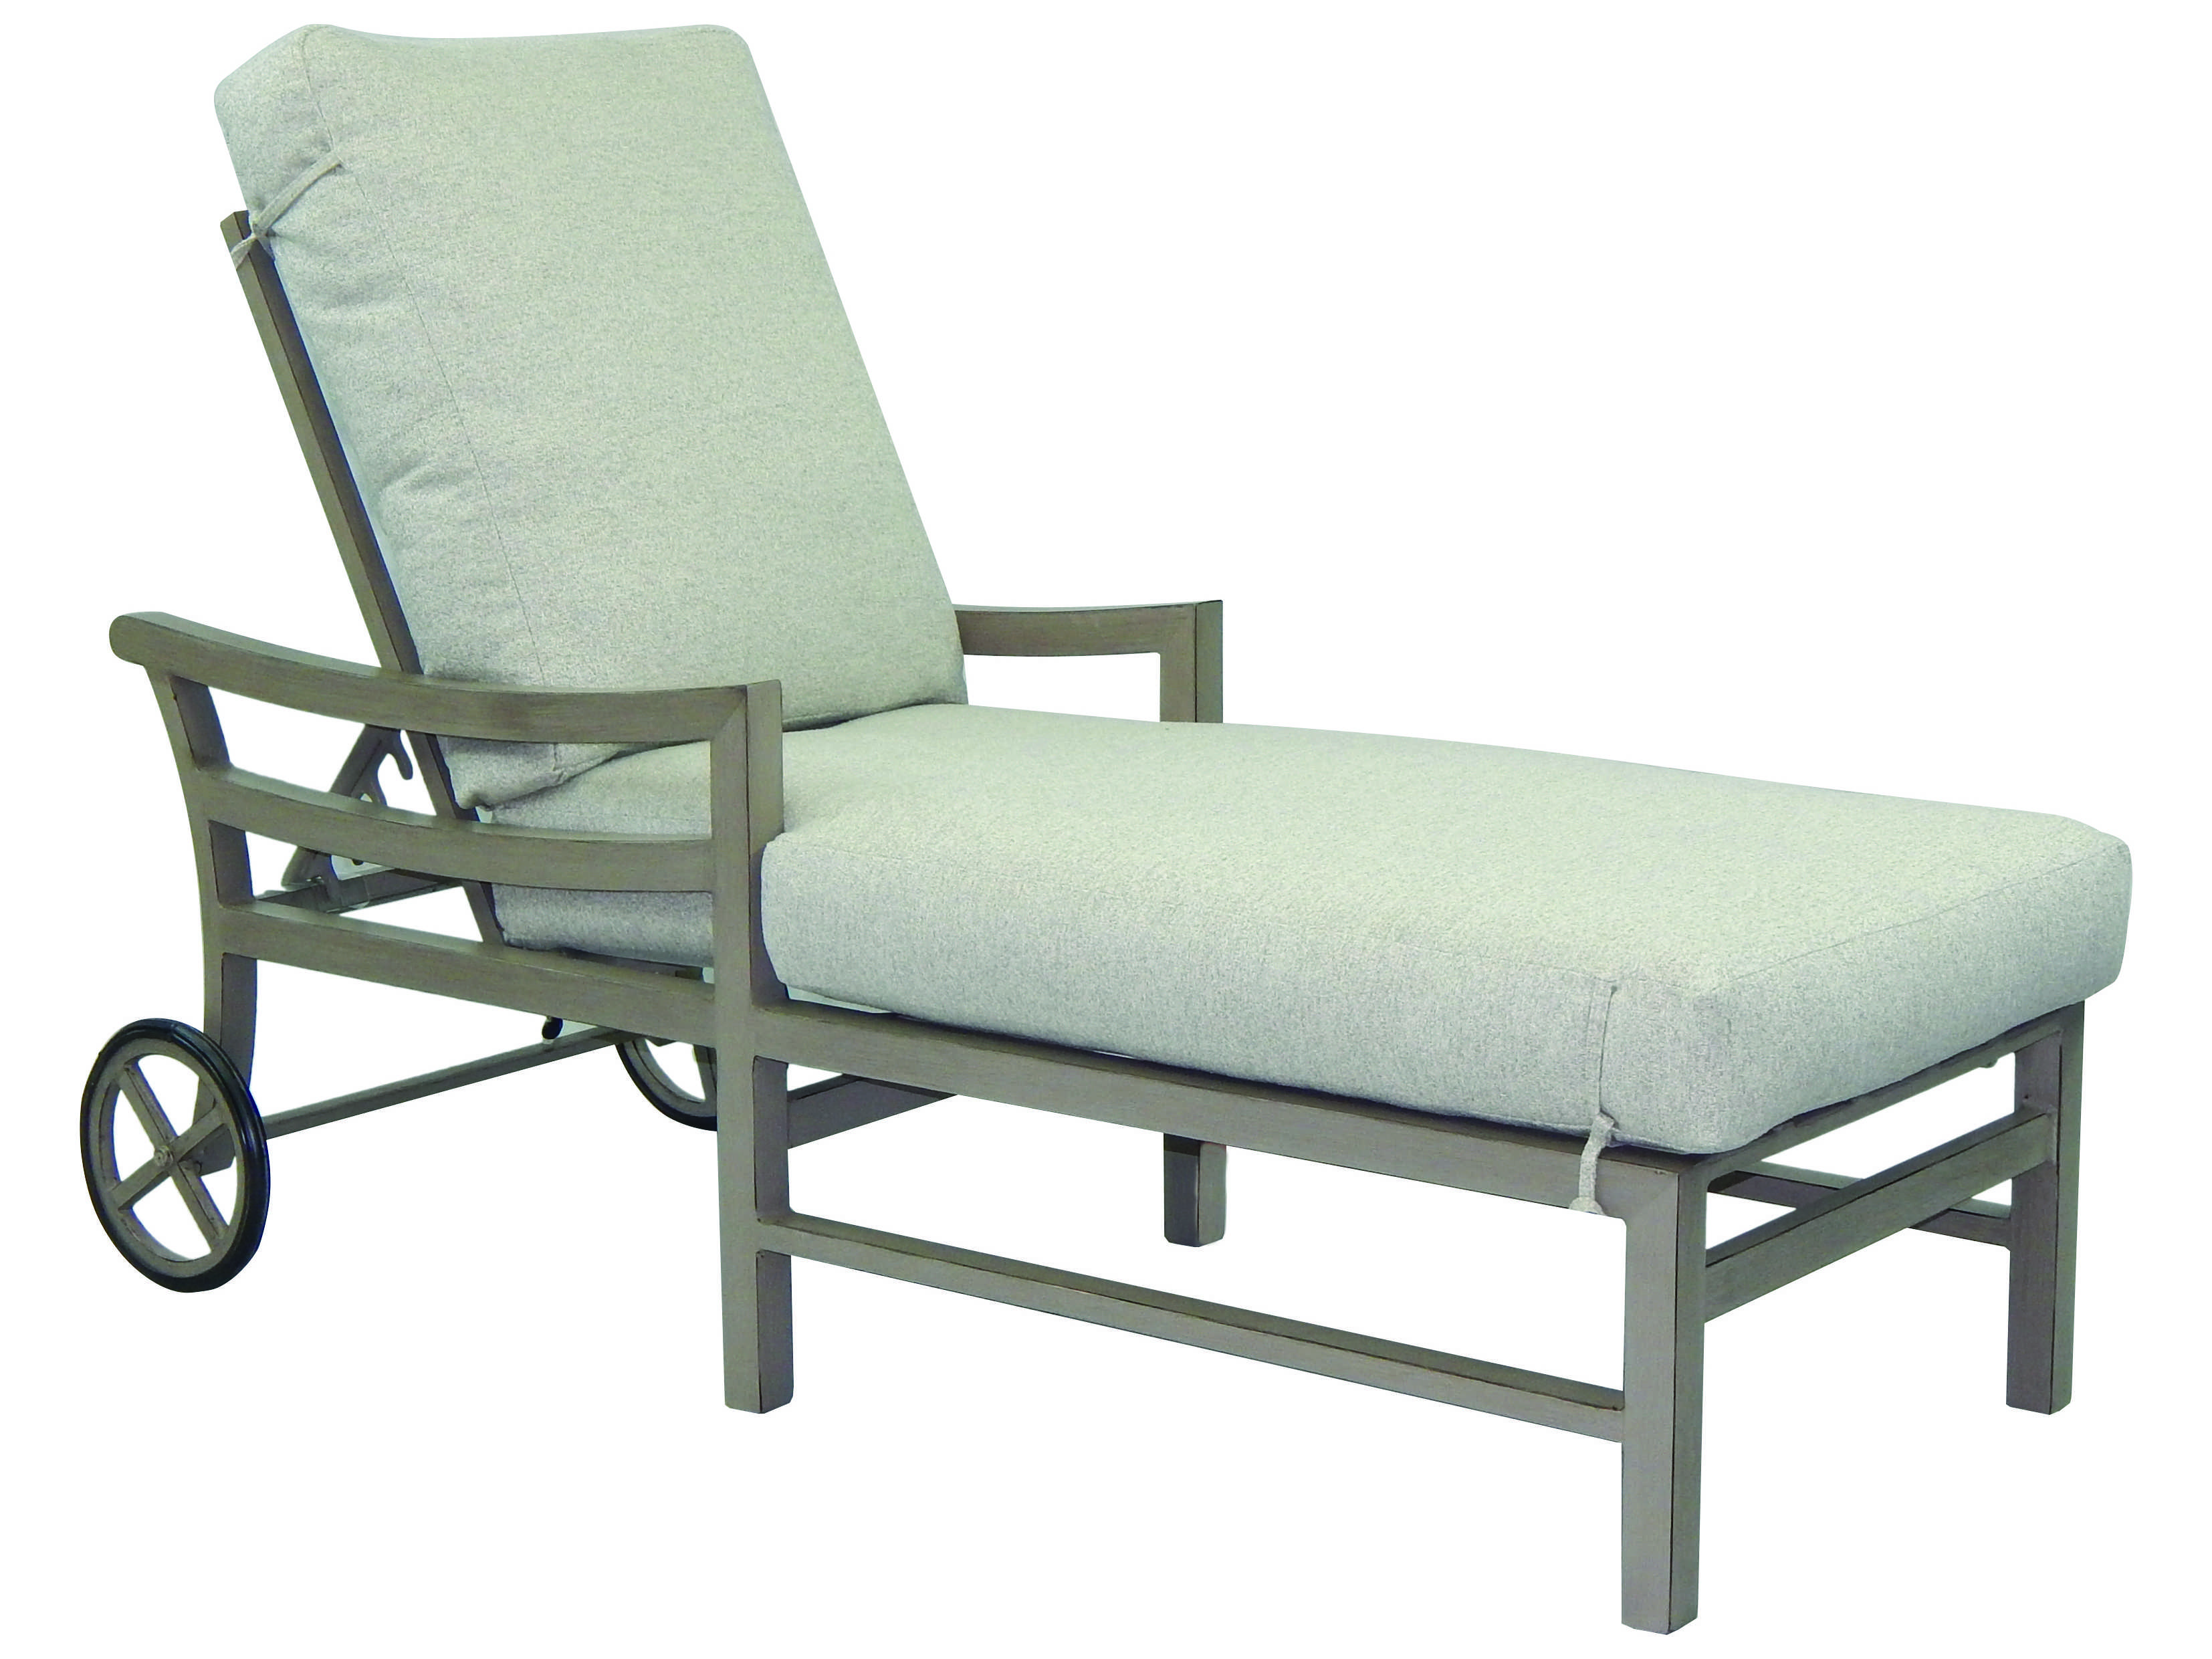 Castelle roma cushion aluminum adjustable chaise lounge for Aluminum chaise lounge with wheels